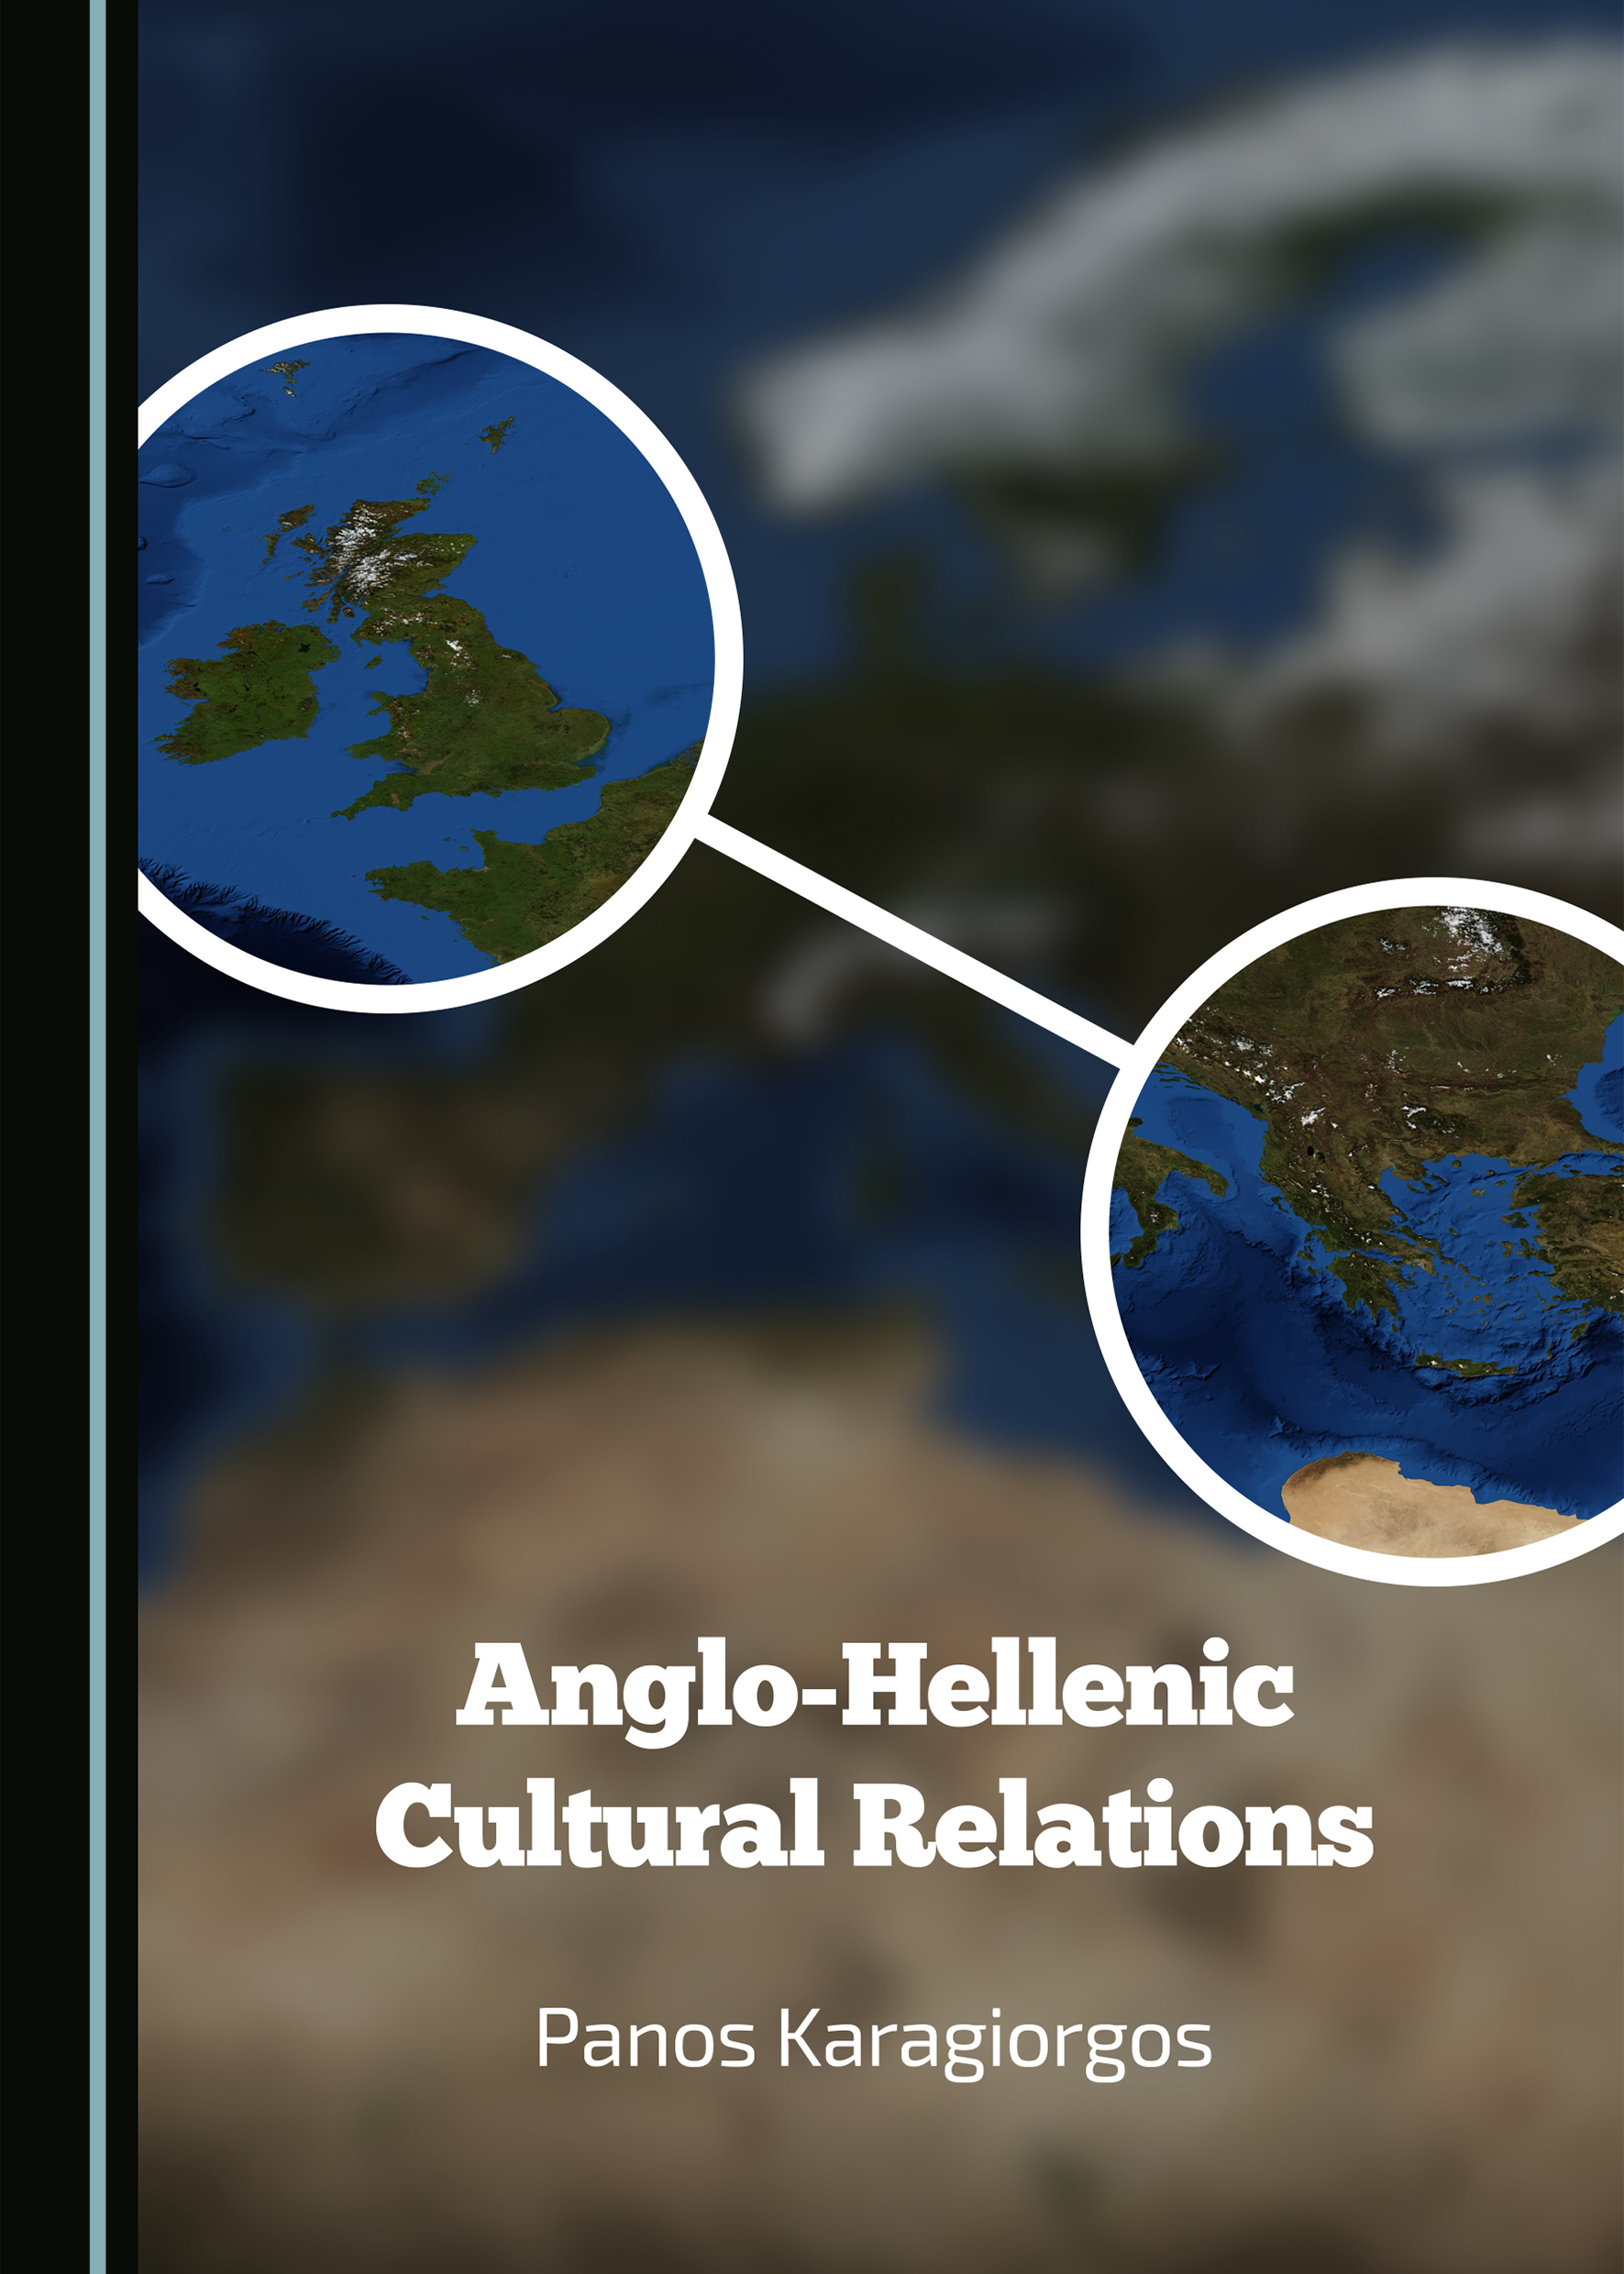 Anglo-Hellenic Cultural Relations